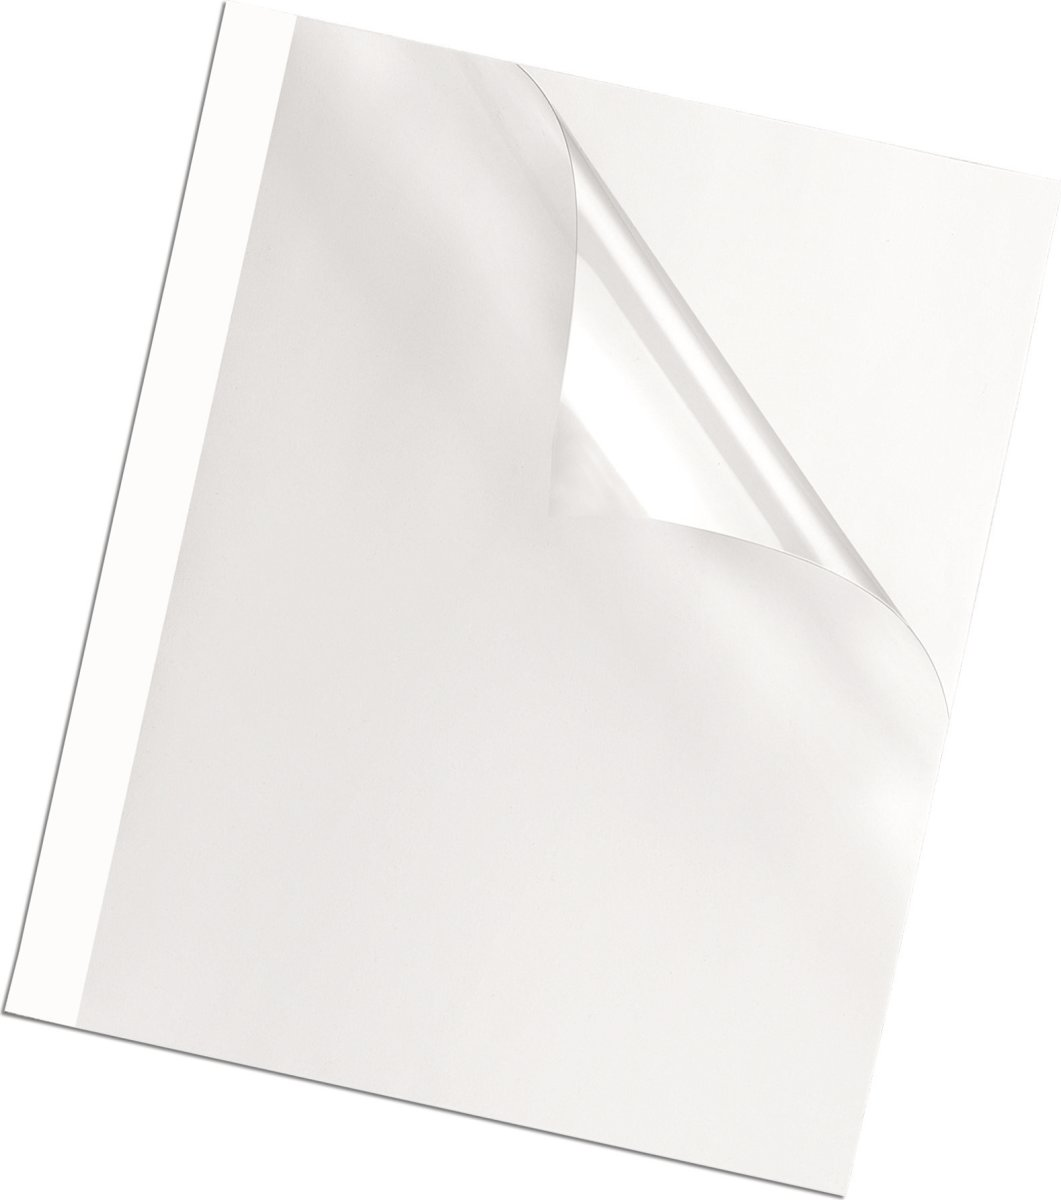 Fellowes Standard Thermal Binding cover 15mm, hvid